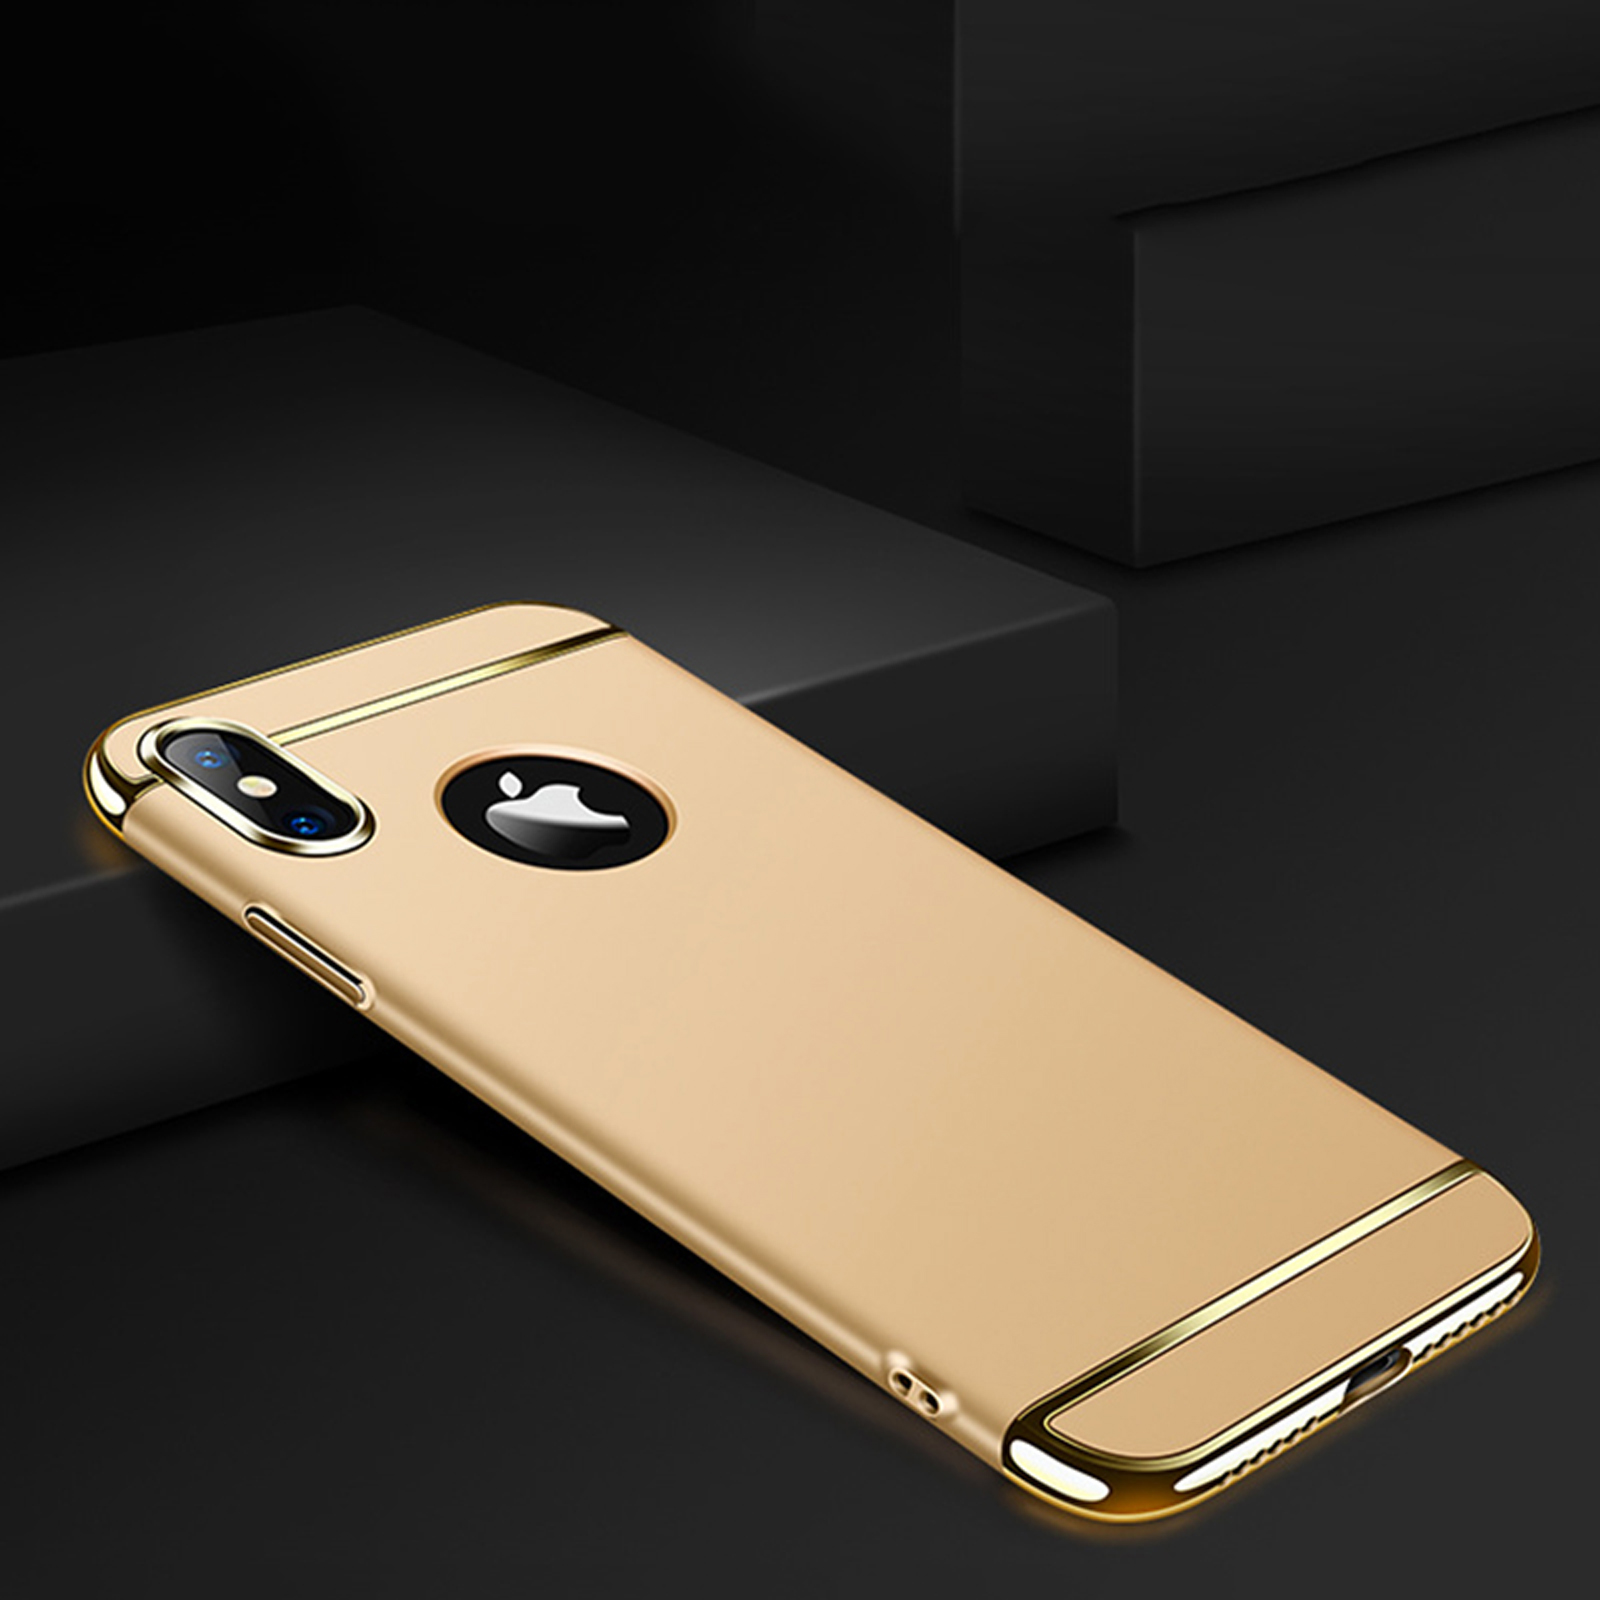 thumbnail 94 - Luxury Matte Case Tempered Glass Cover For Apple iPhone X XS XR Max 10 8 7 6s 6